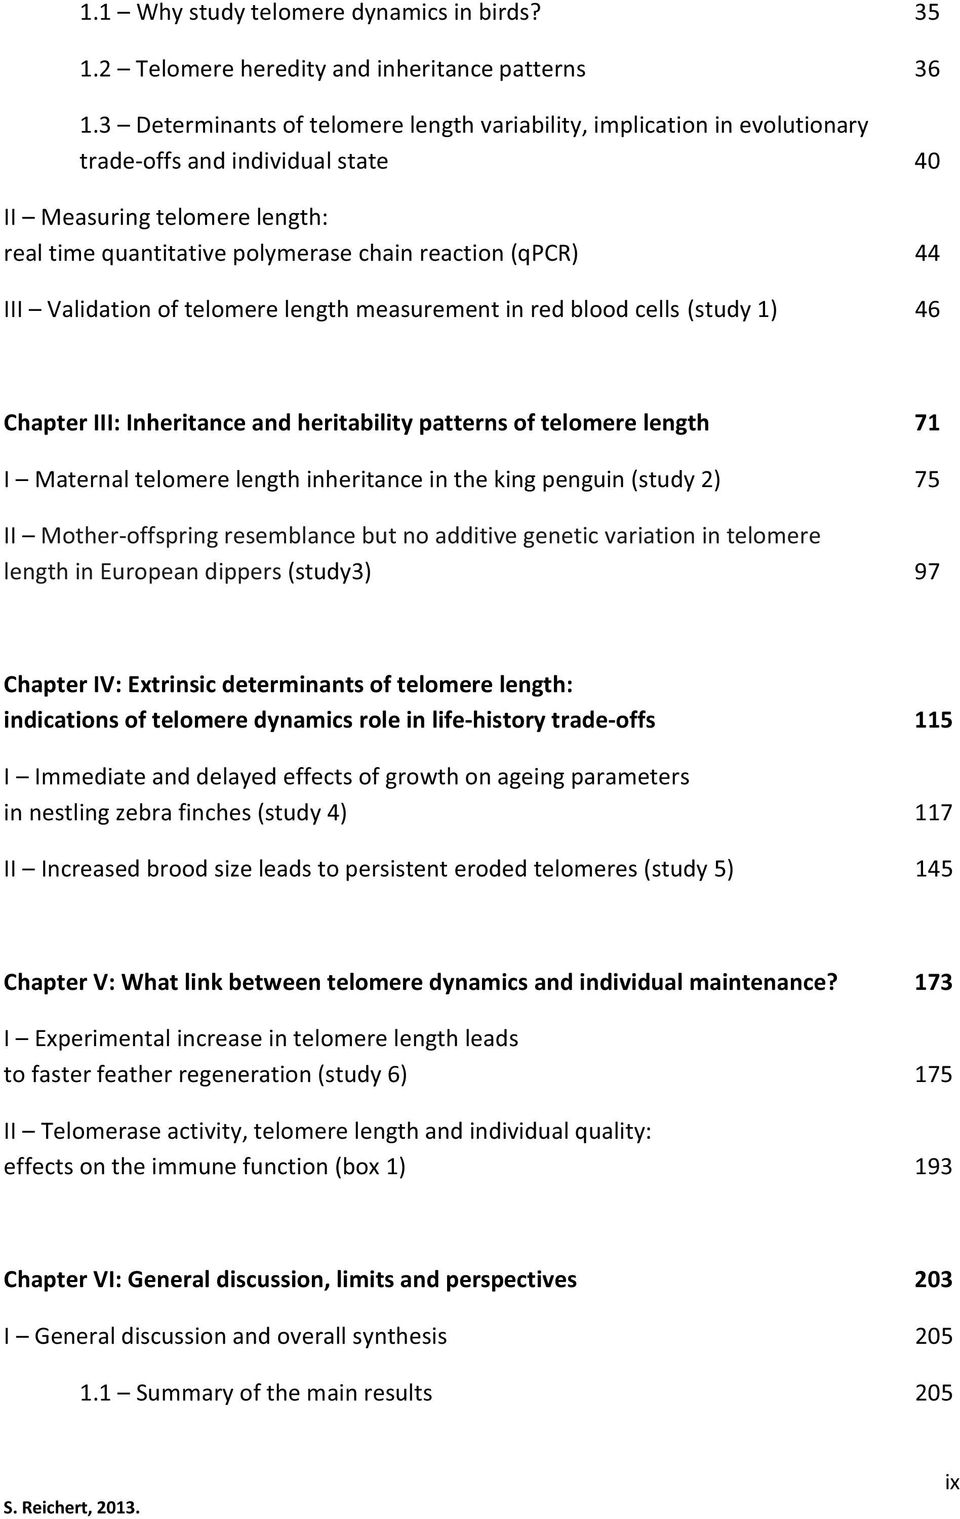 III Validation of telomere length measurement in red blood cells (study 1) 46 Chapter III: Inheritance and heritability patterns of telomere length 71 I Maternal telomere length inheritance in the